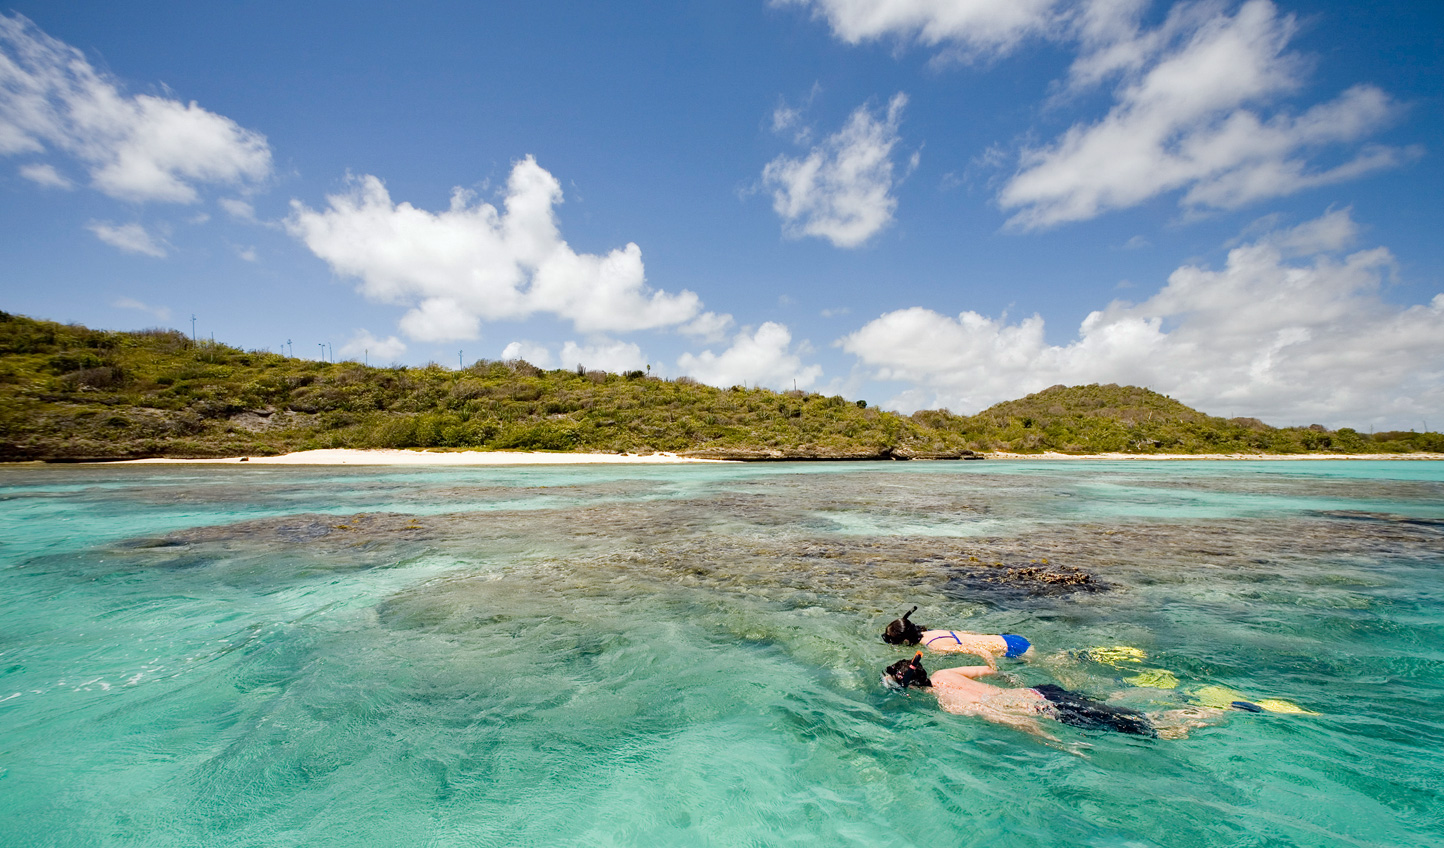 Dive into the colours of the reef below